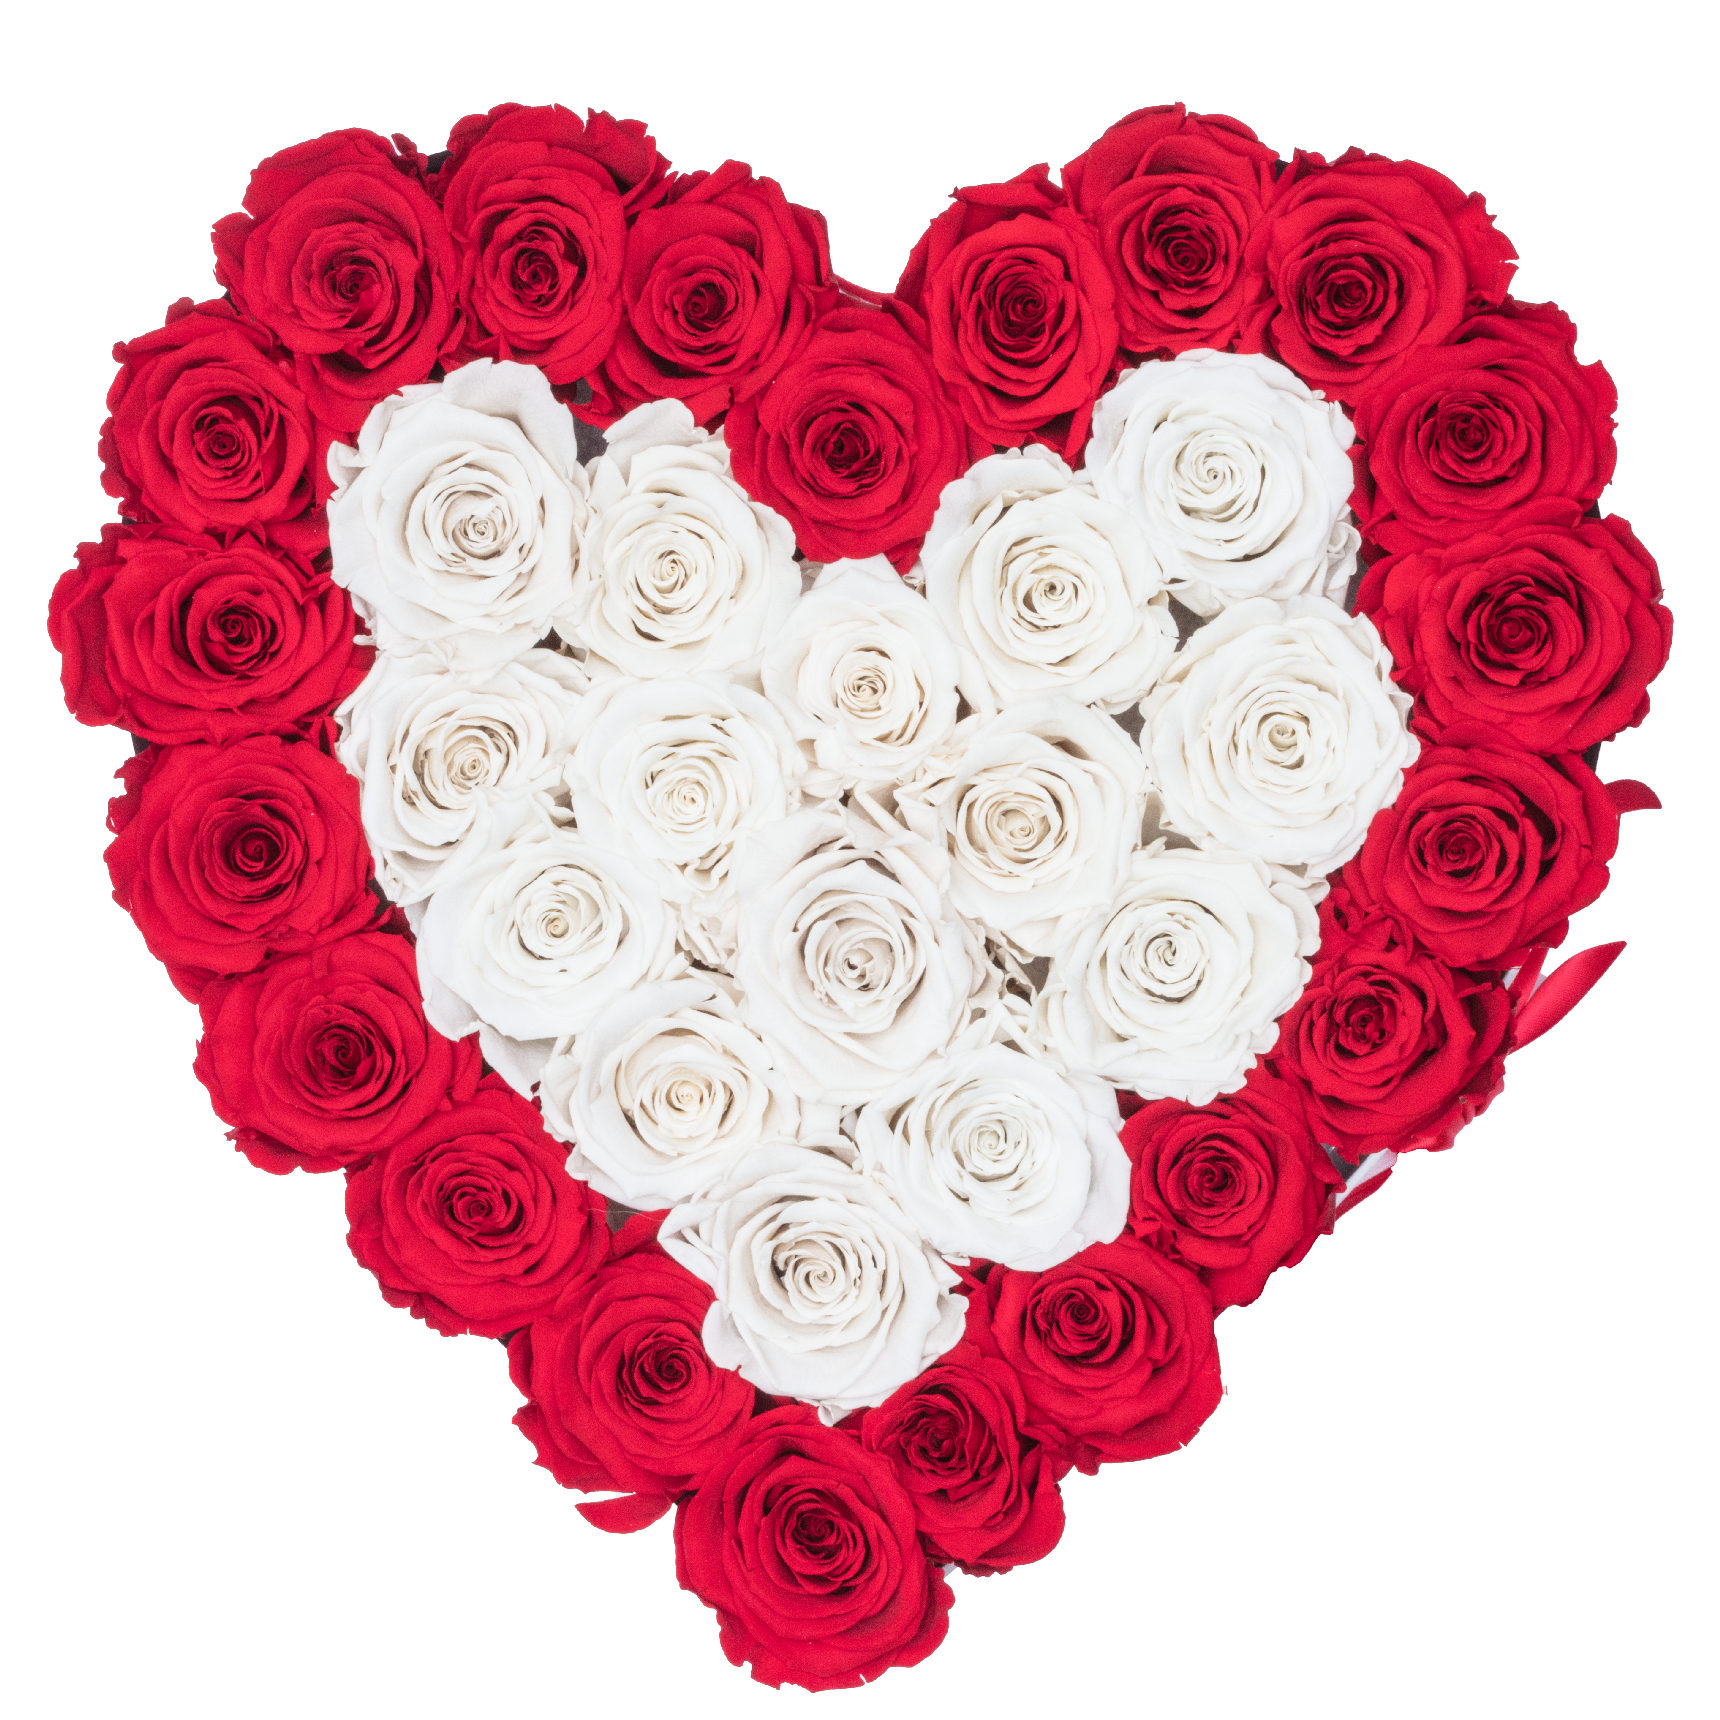 Rose Last A Year Red And White Preserved Roses White Heart Huggy